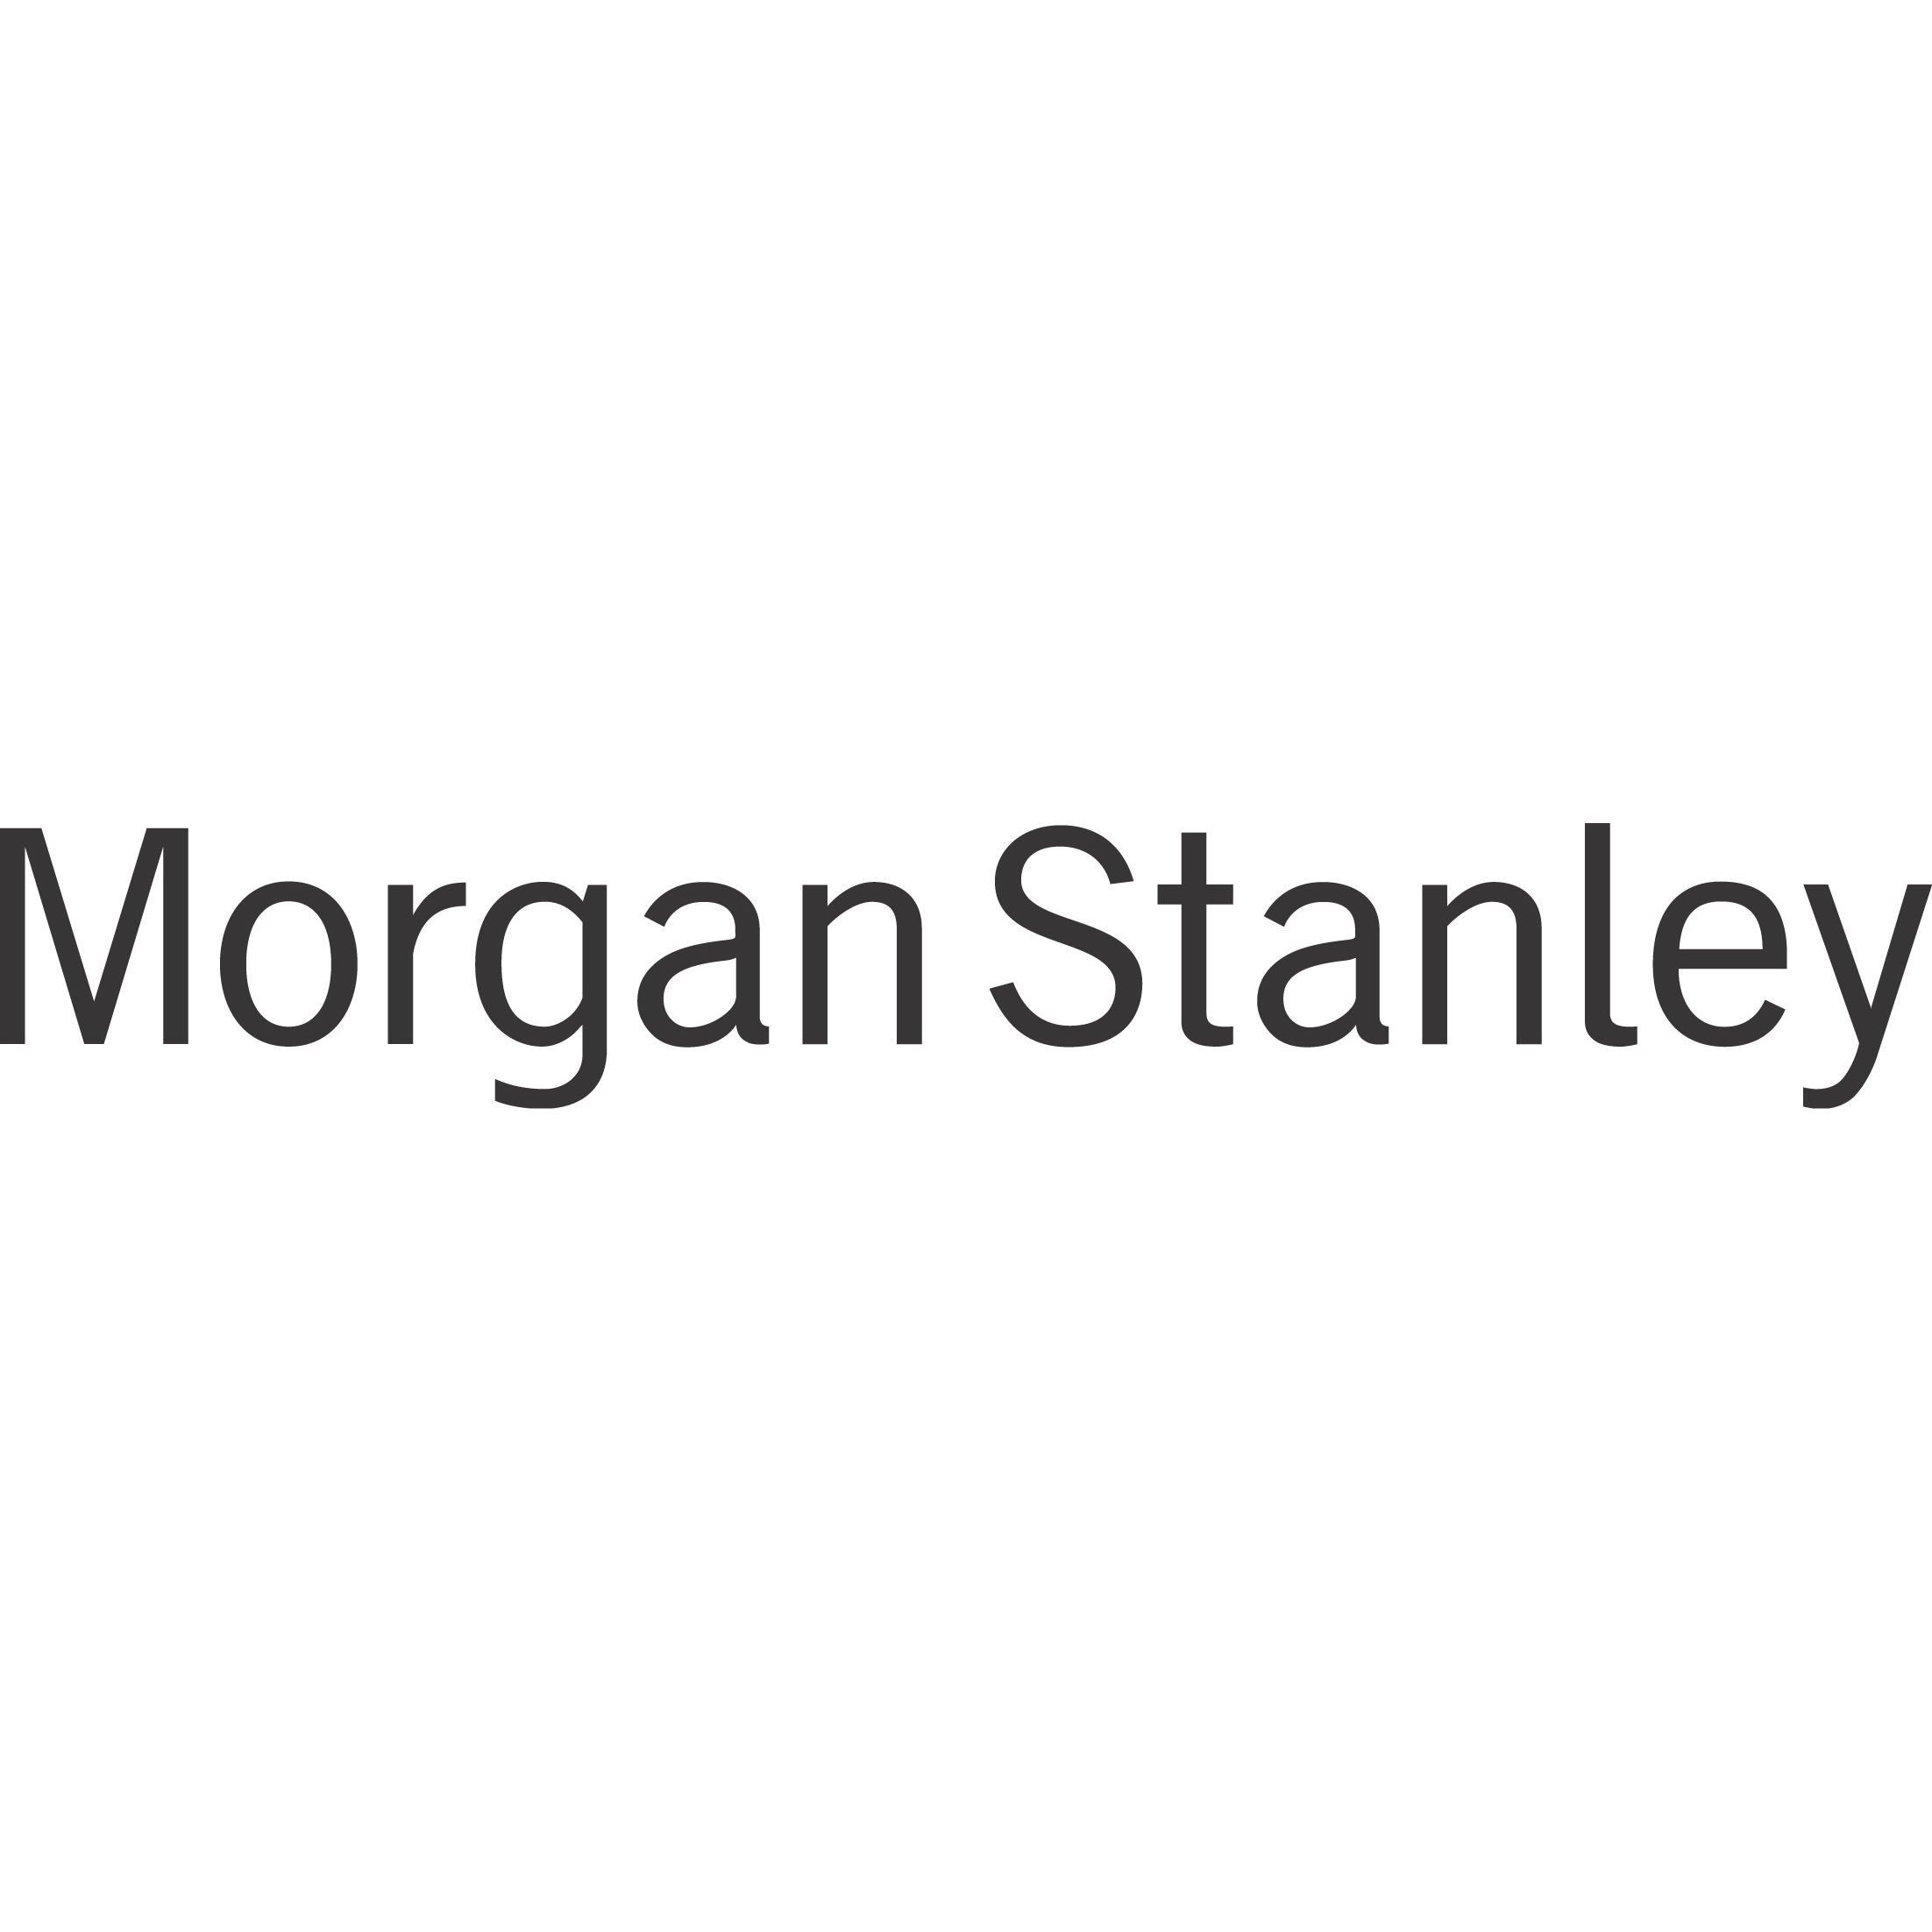 Clay Maner - Morgan Stanley | Financial Advisor in Greensboro,North Carolina